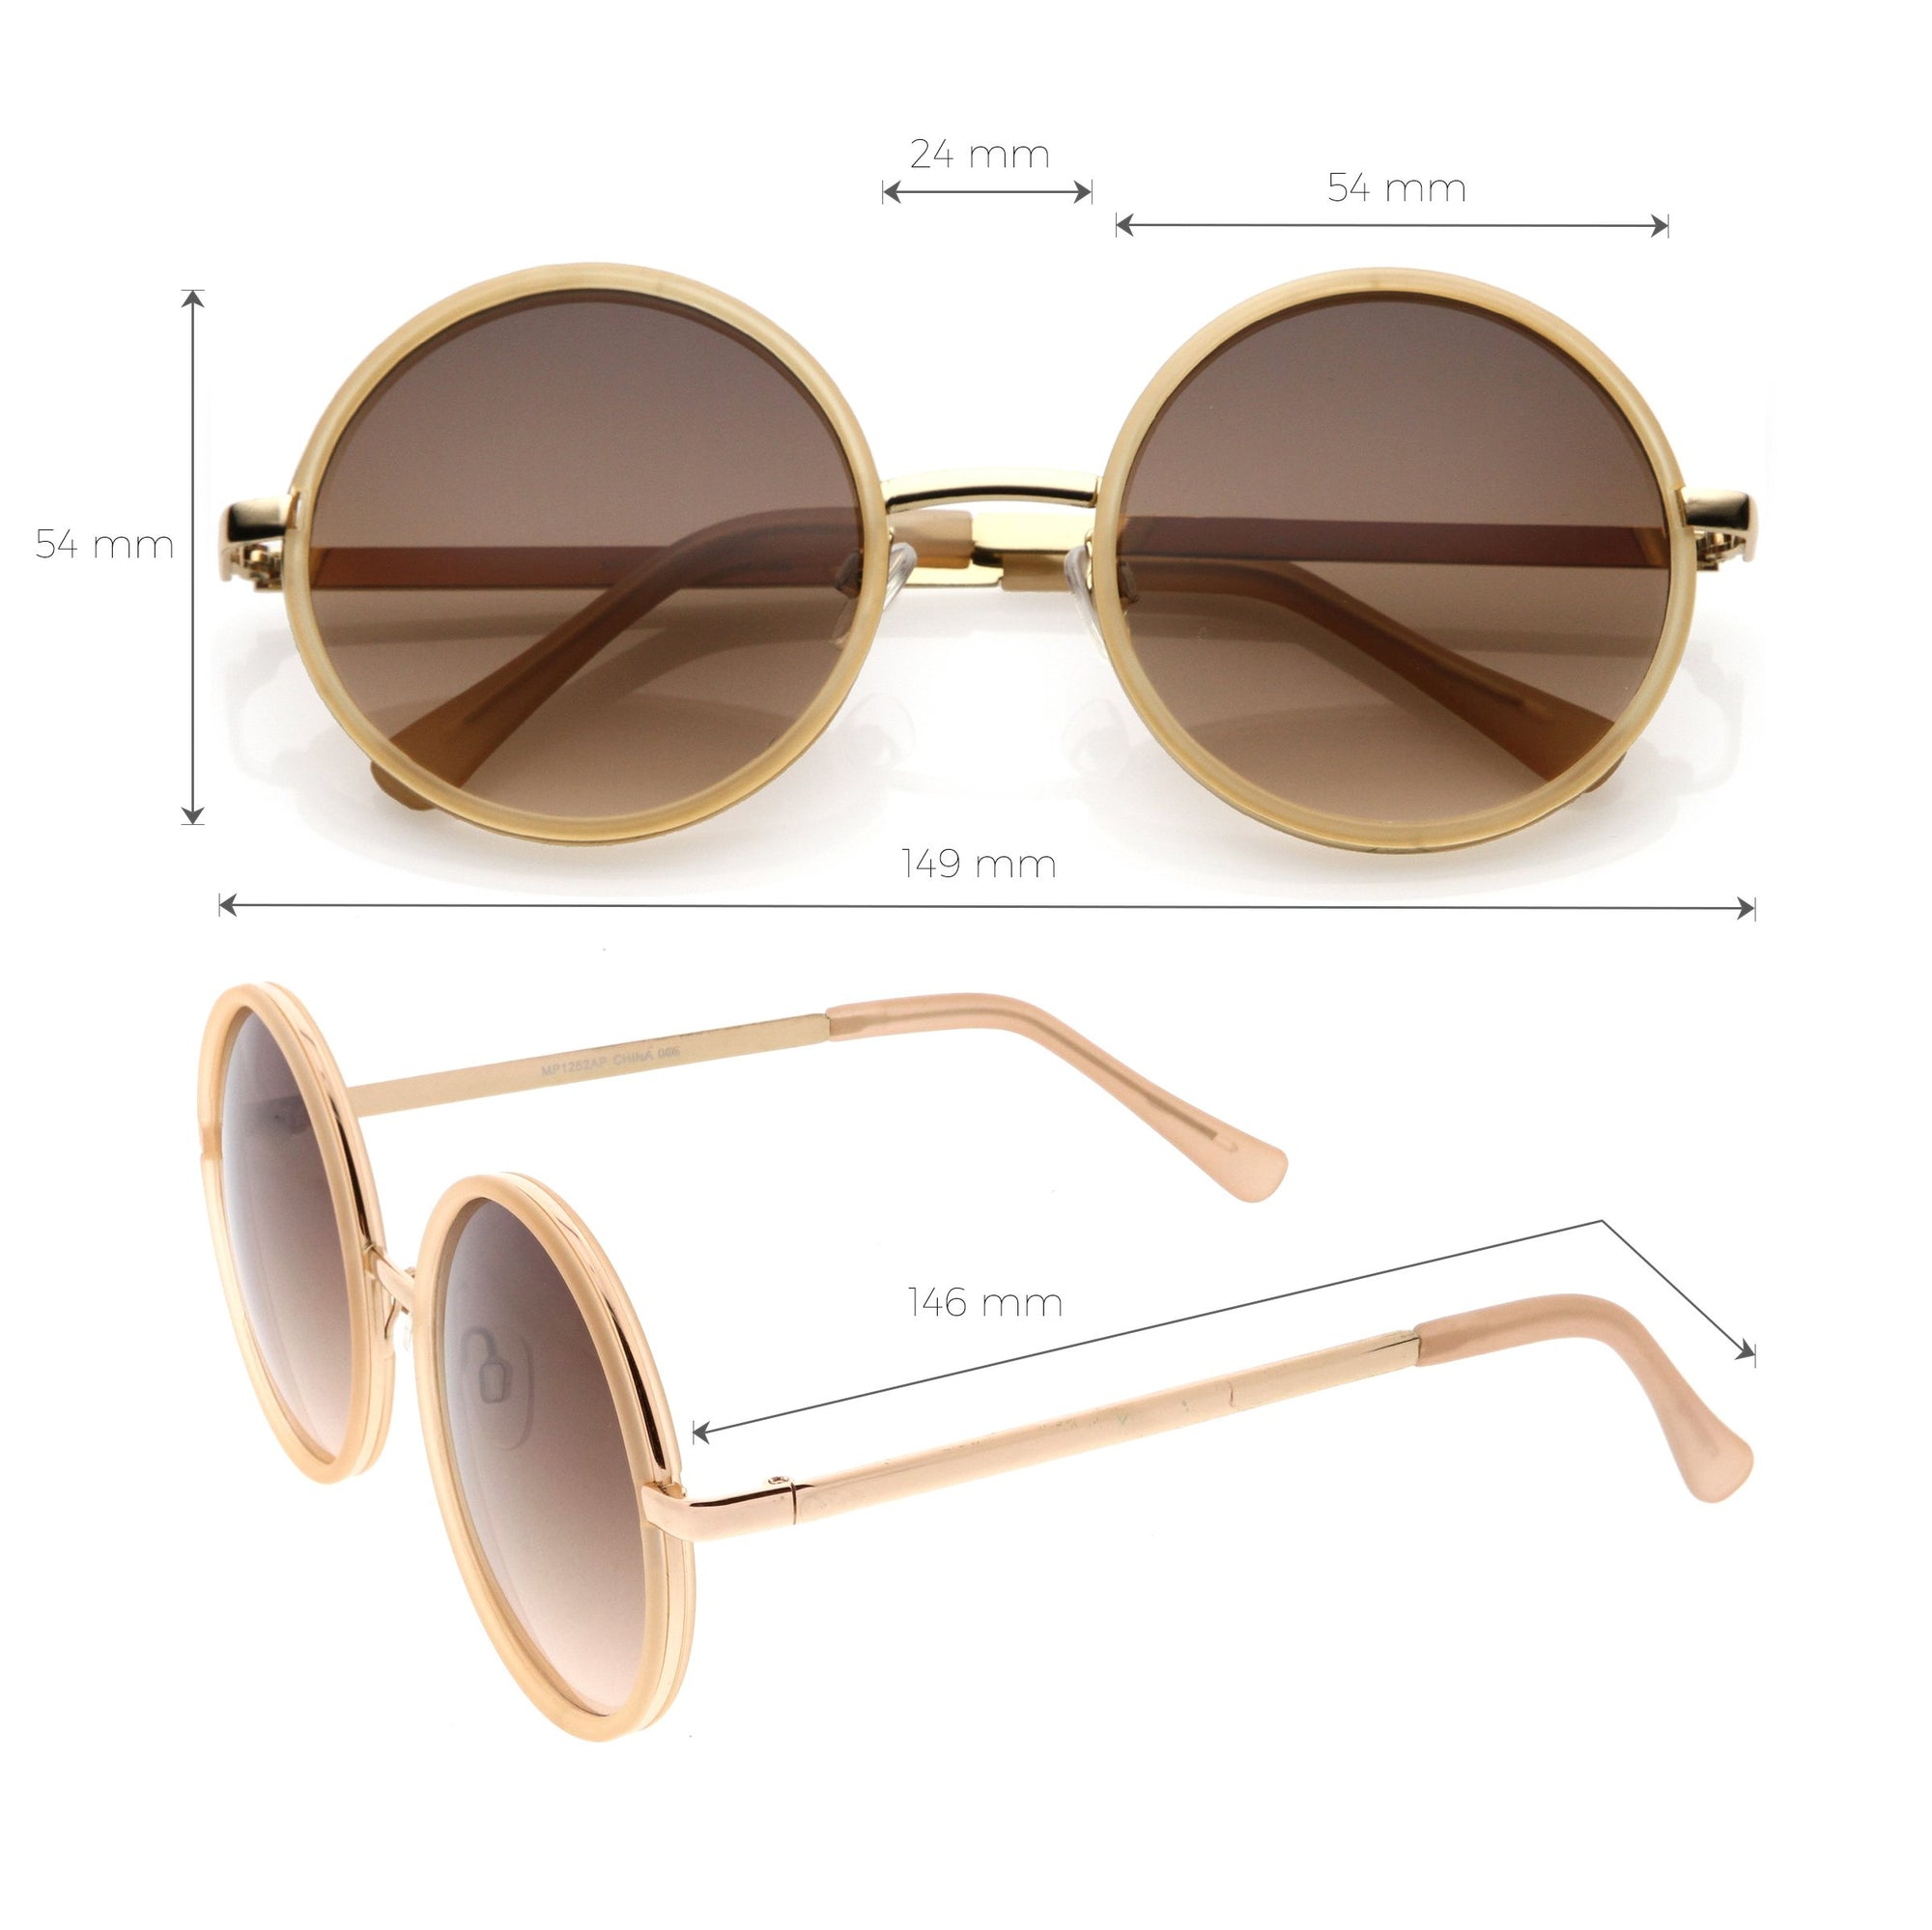 Glamorous Chic Oversized Round Sunglasses with Stylish Metal Arms